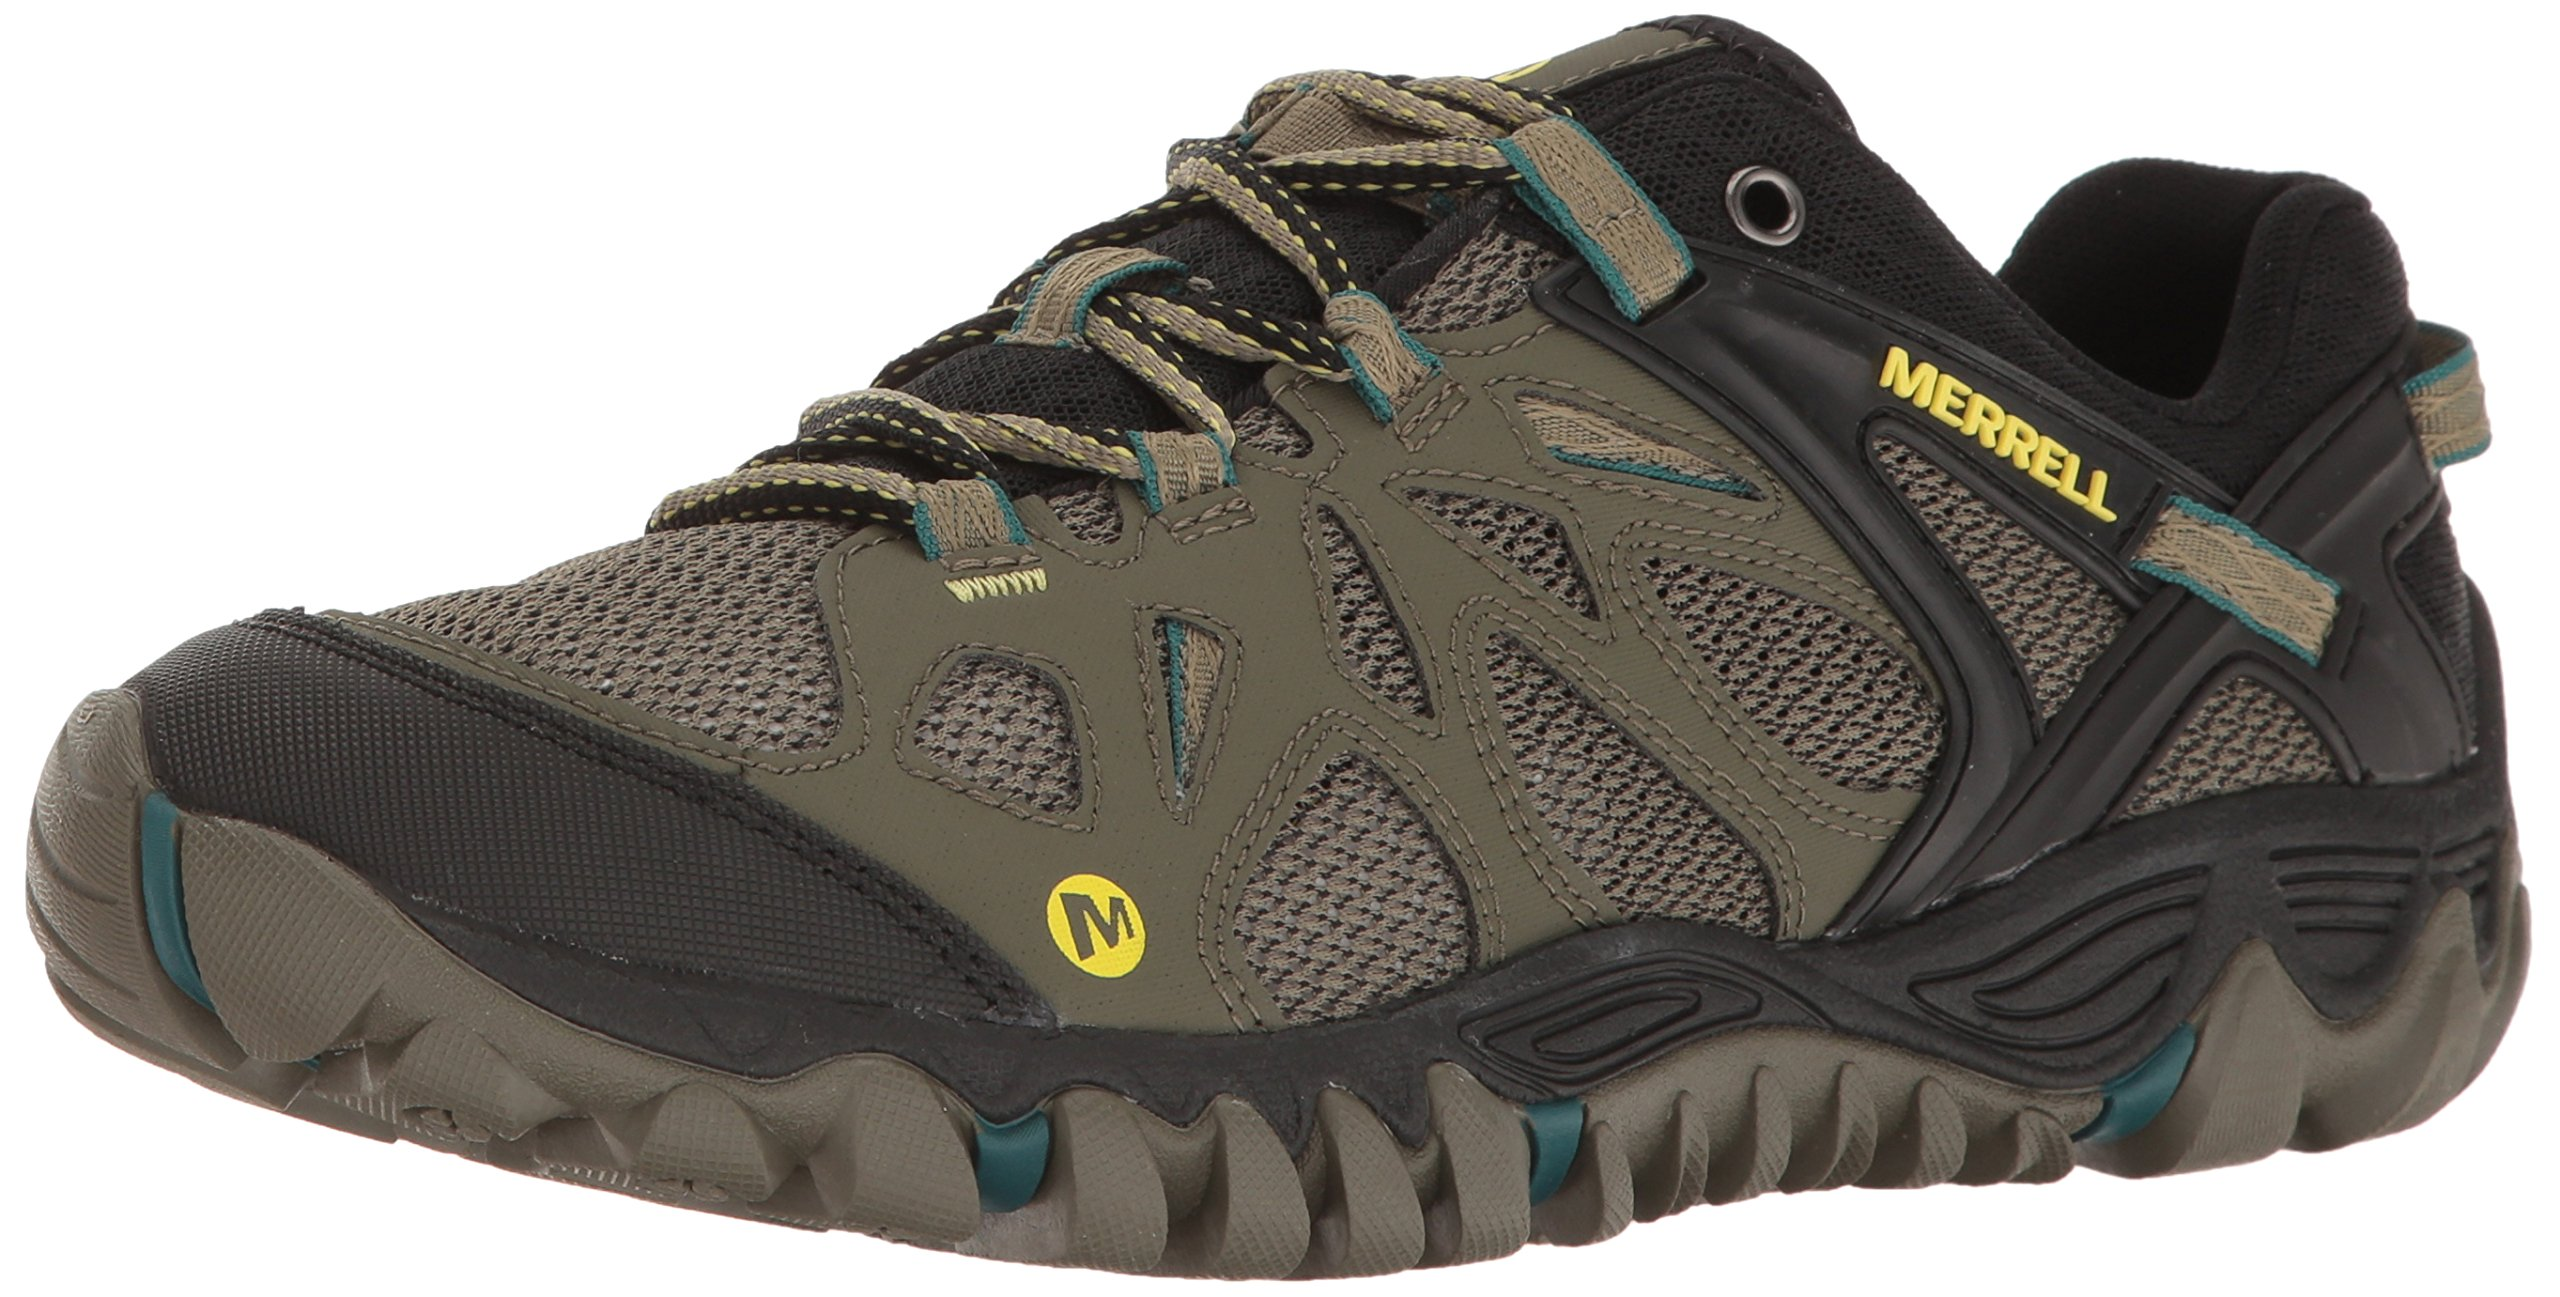 Merrell Men's All Out Blaze Aero Sport Hiking Shoe, Dusty Olive, 15 M US